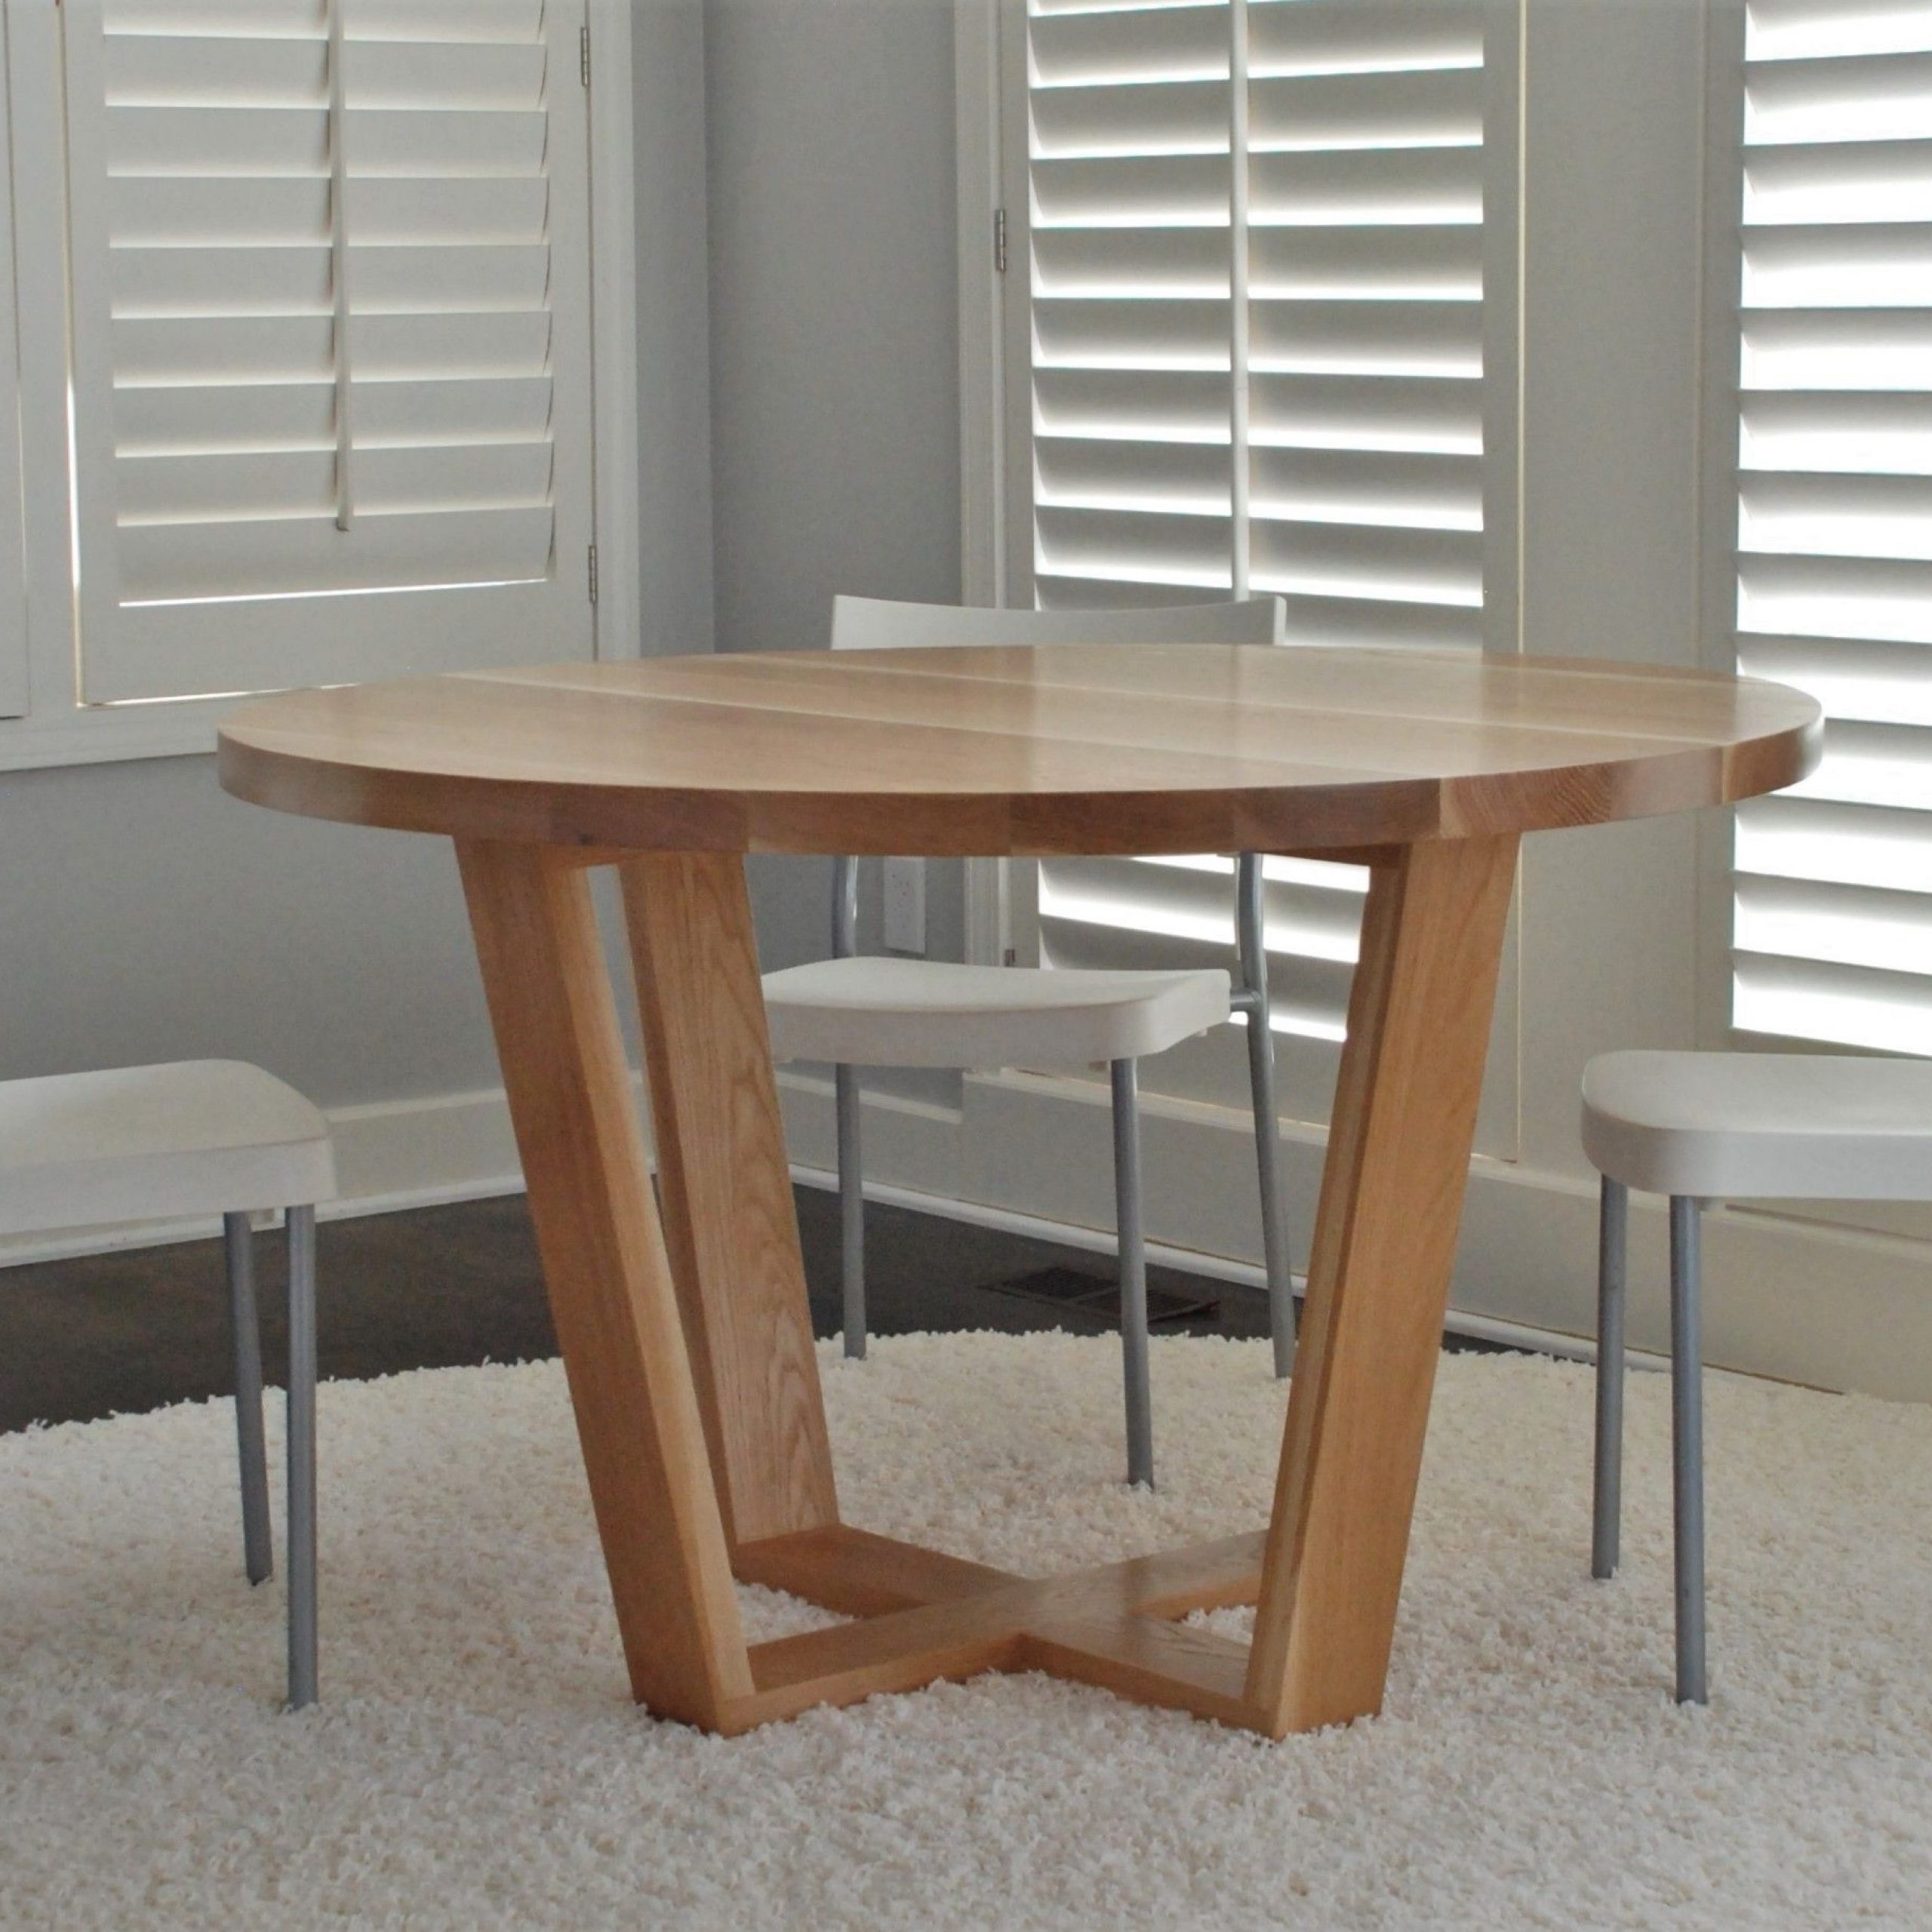 Solid Wood Circular Dining Tables White In Trendy Hand Crafted Angled Leg Round Dining Tablebelak (View 9 of 30)